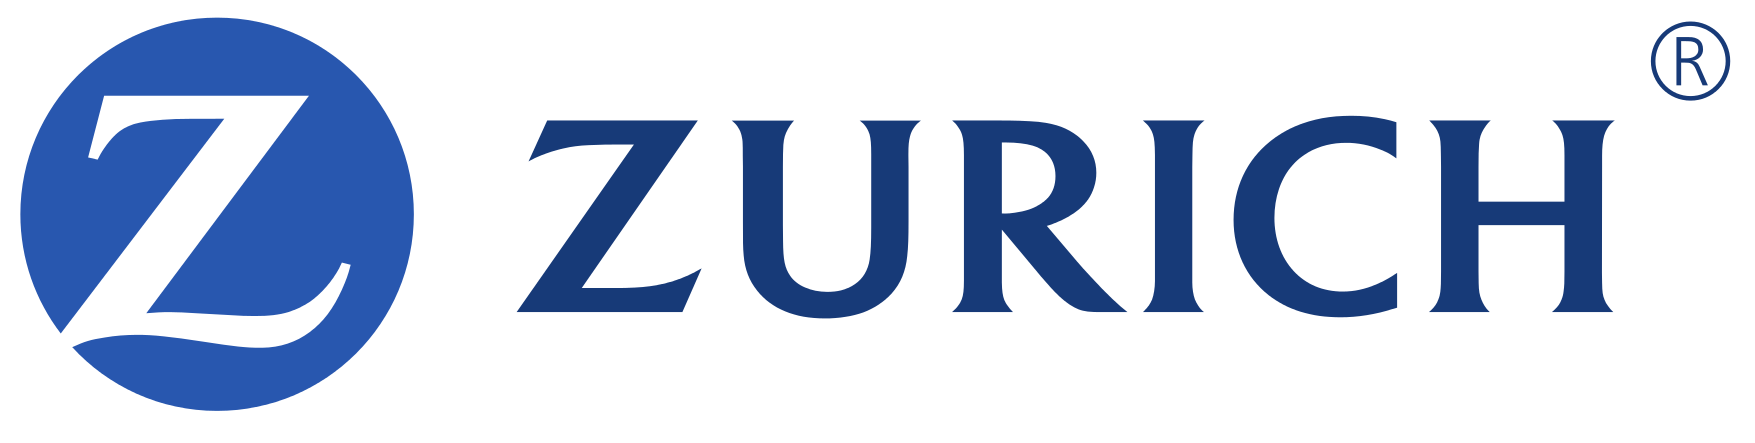 zurich-institutional-logo